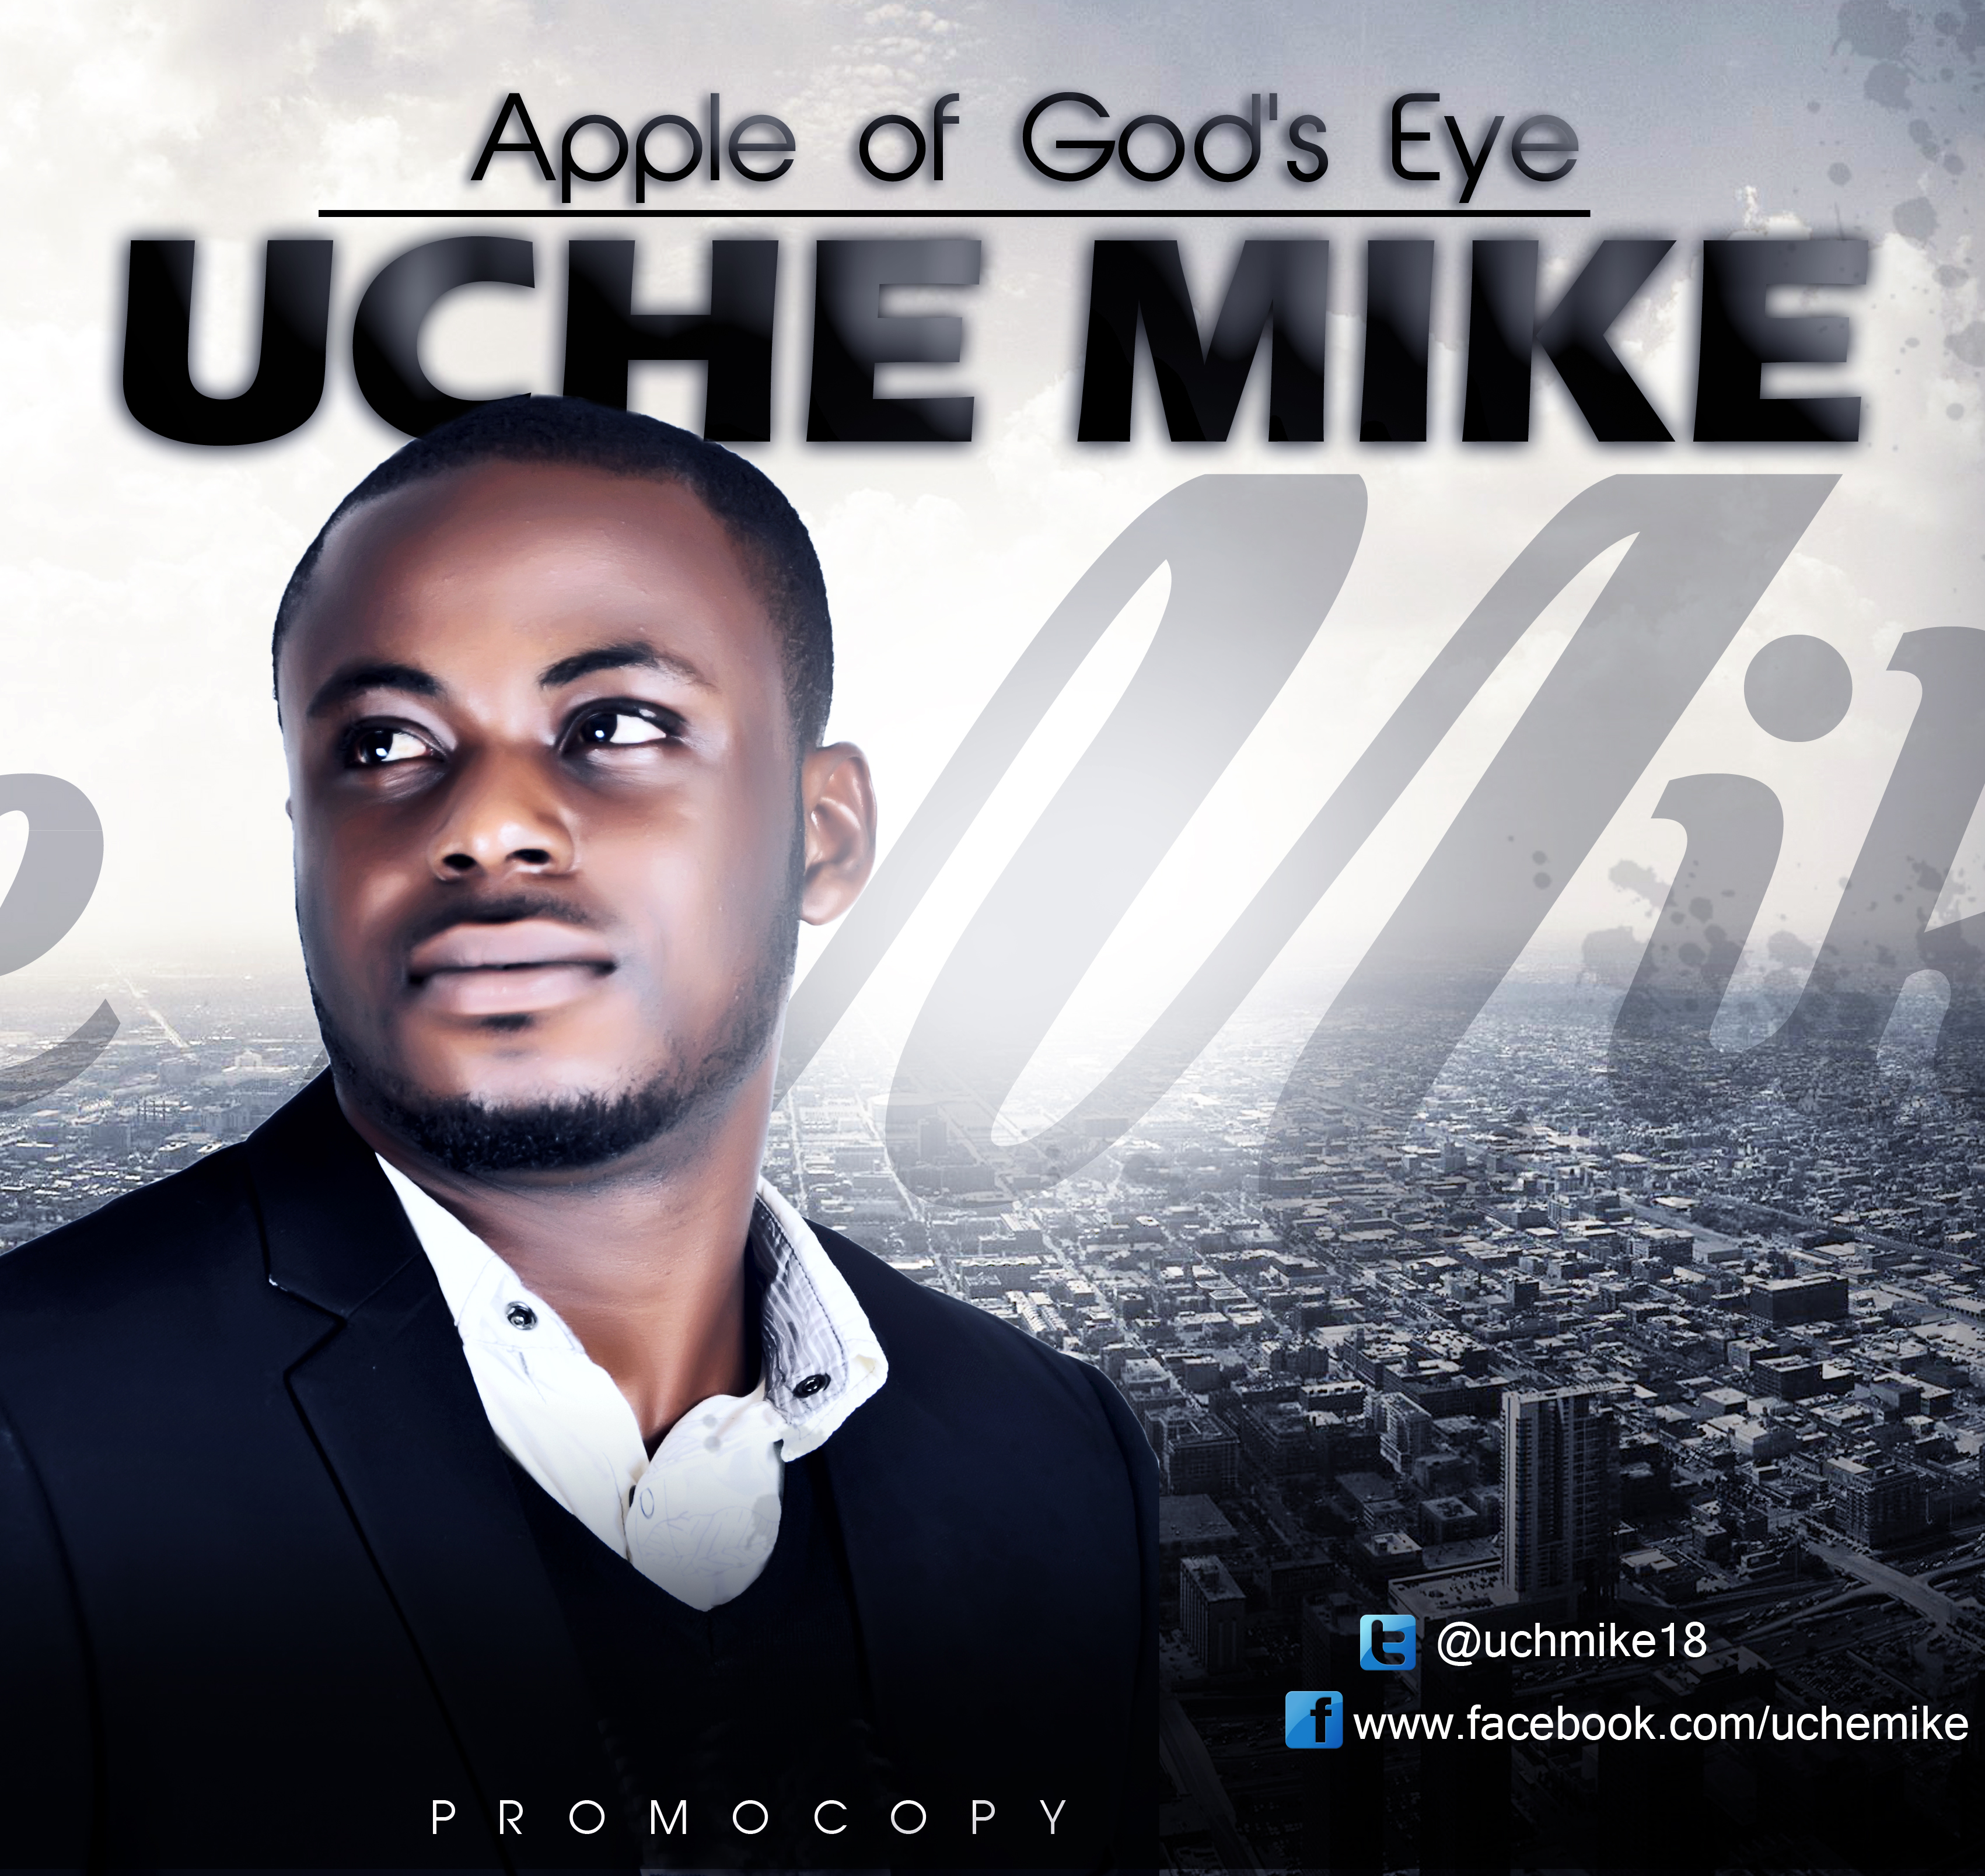 Apple of God's eye By Uche Mike [@uchmike18]